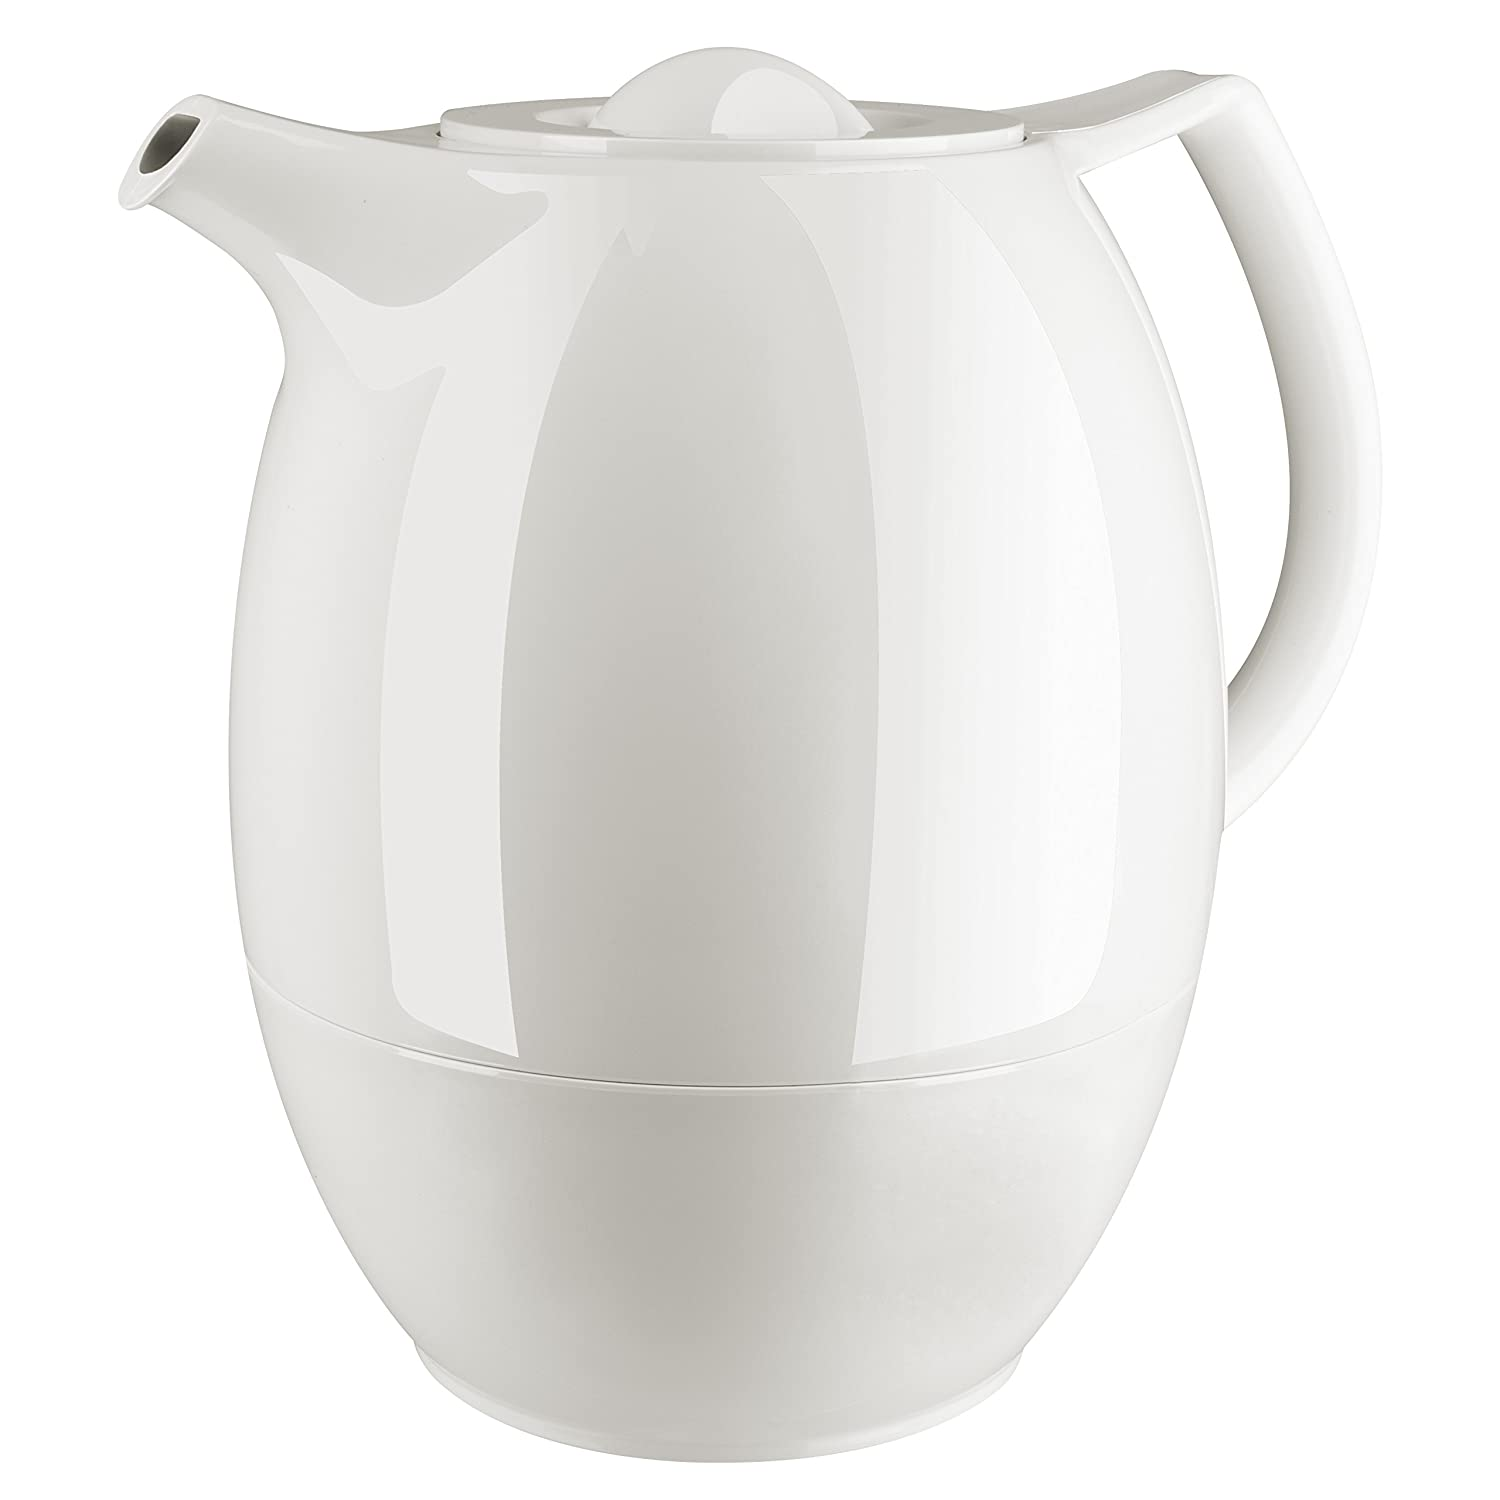 Emsa 503692 Ellipse vacuum tea pot with strainer, 1.0 litres, white